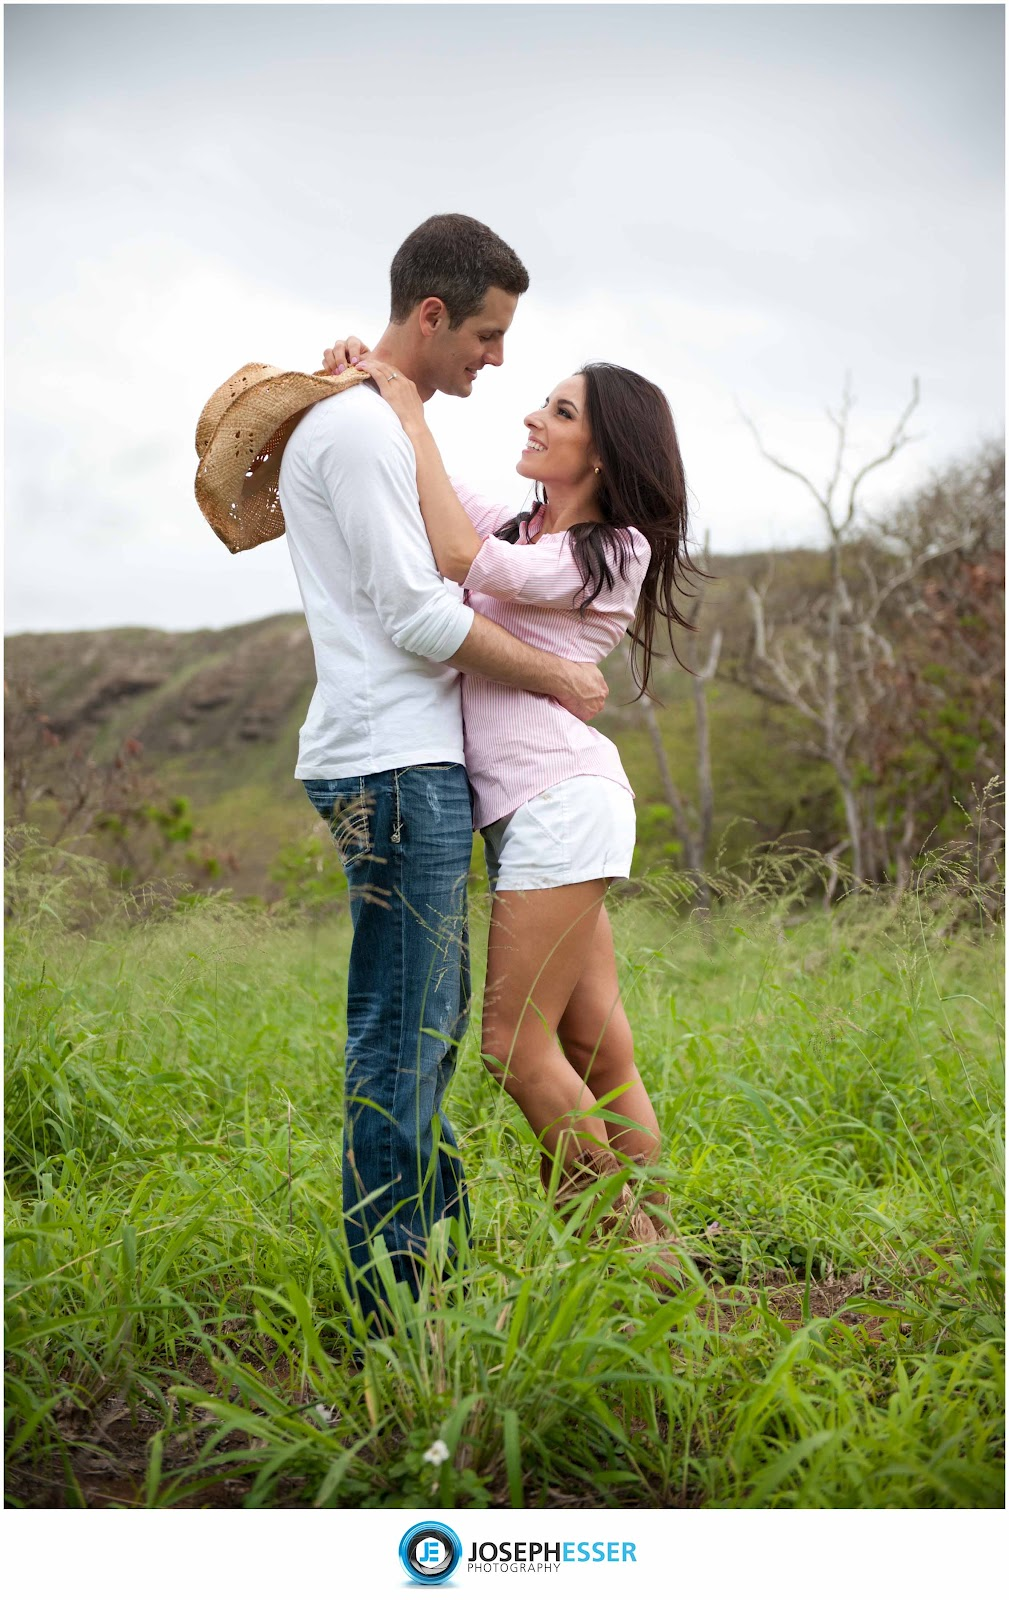 Cowboys And Cowgirls In Love Paniolo engagement session atQuotes About Cowboys And Cowgirls In Love